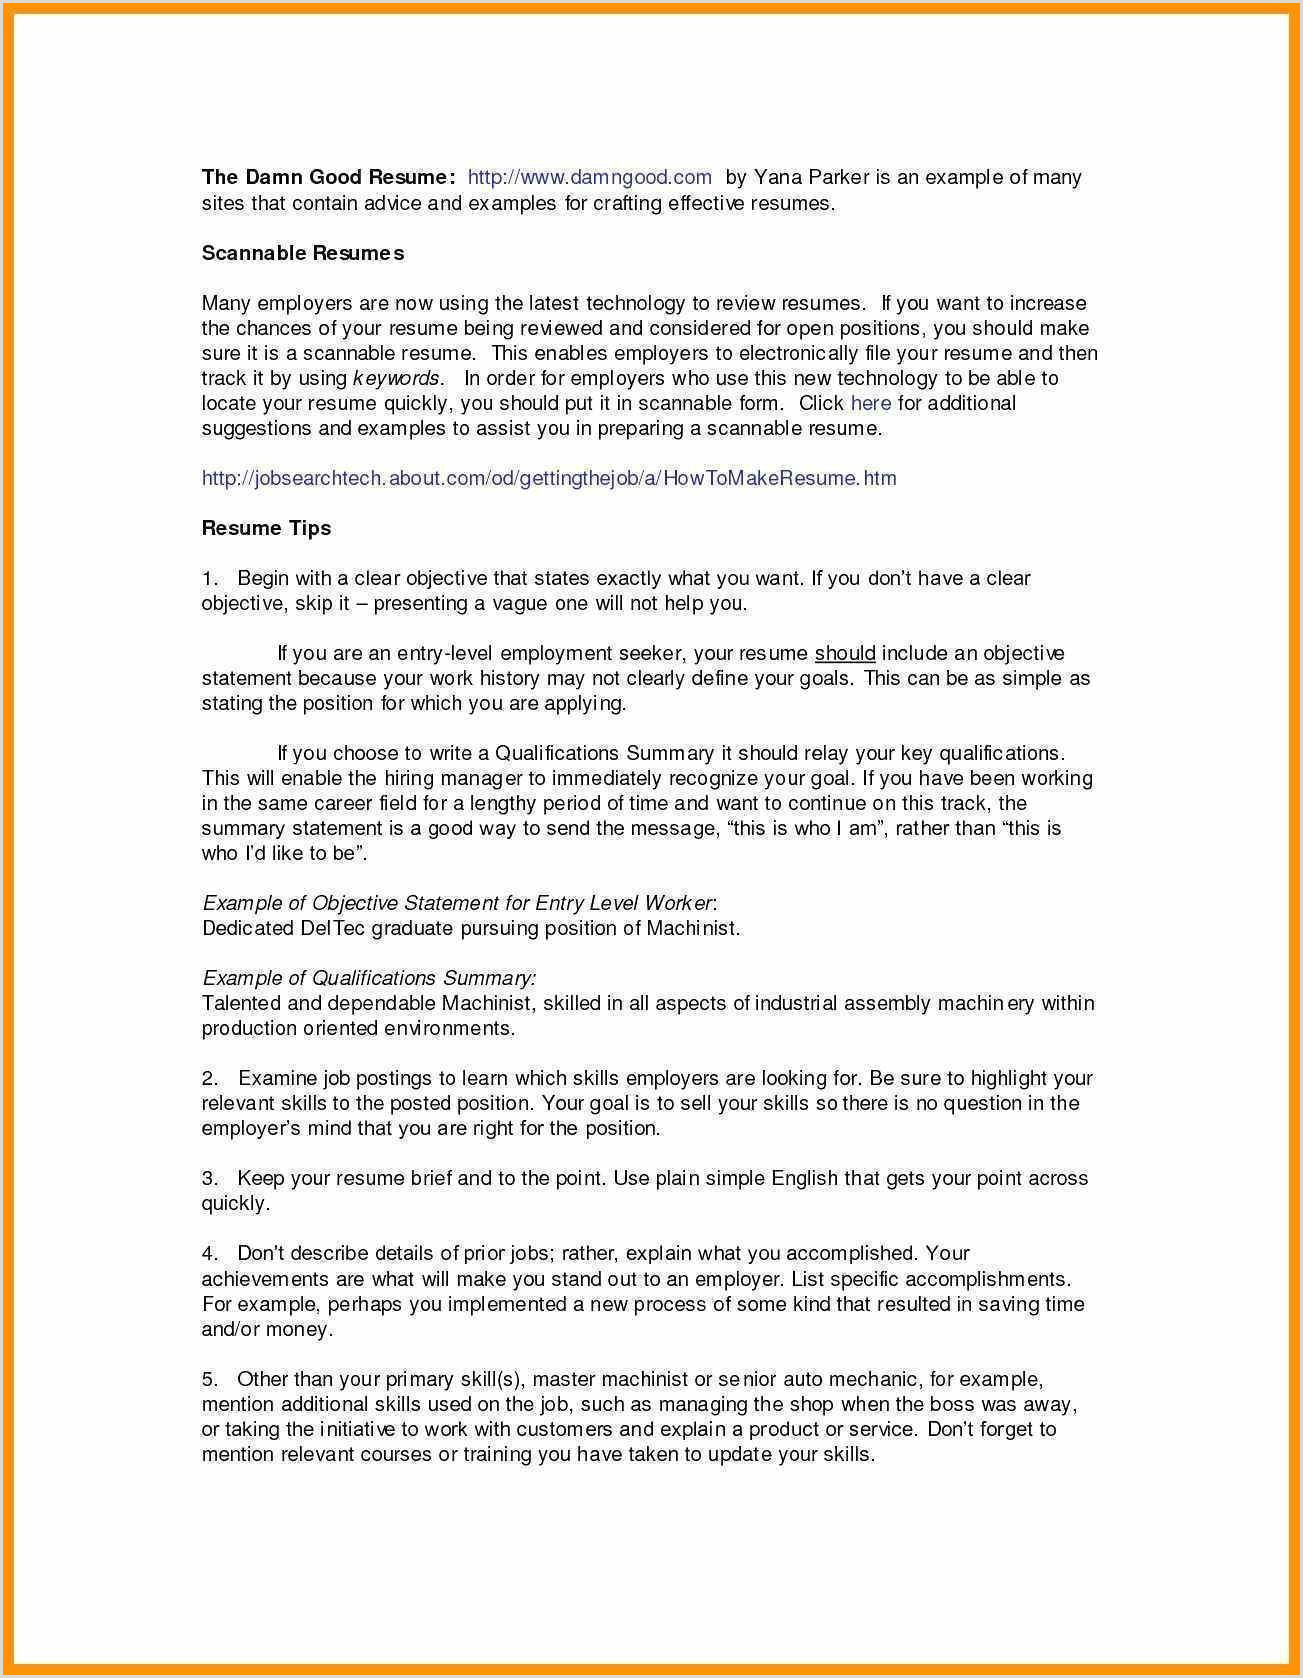 Dunkin Donuts Resume Rn Resume Sample Pdf New Resume Sample for Agriculture